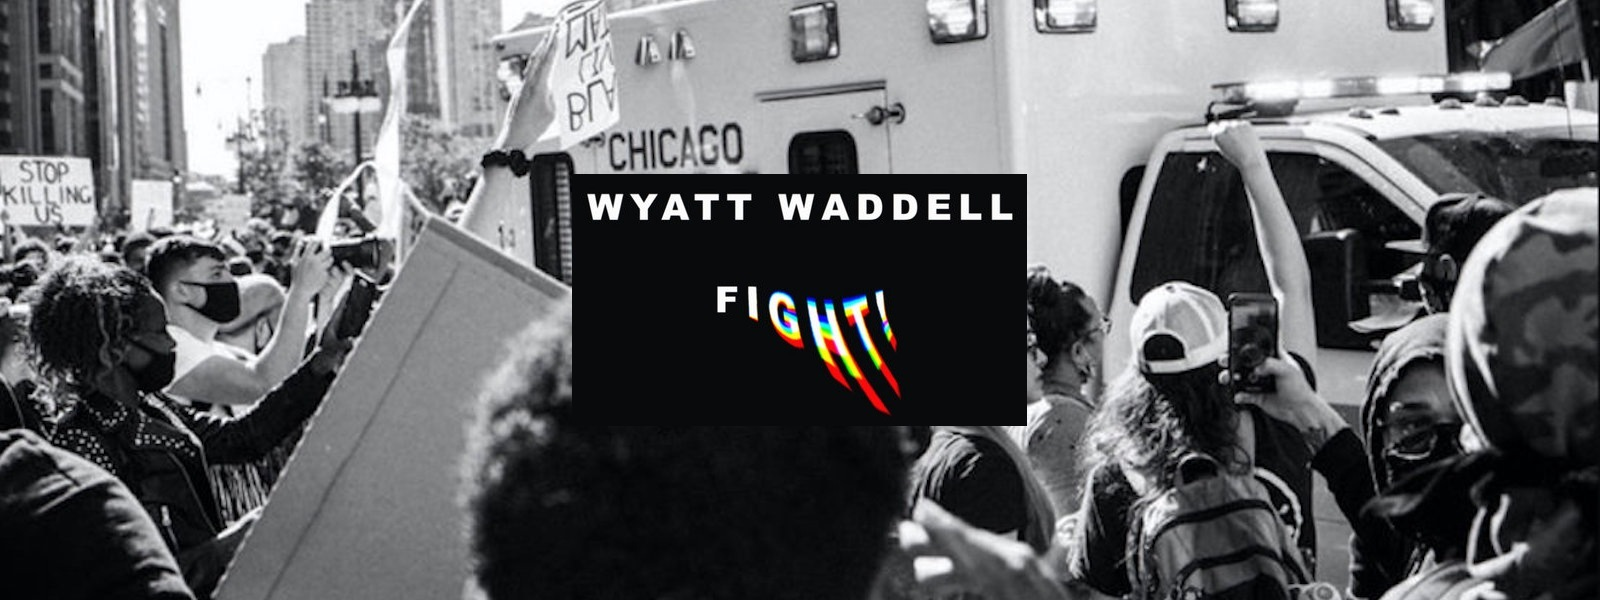 Wyatt Waddell - Fight